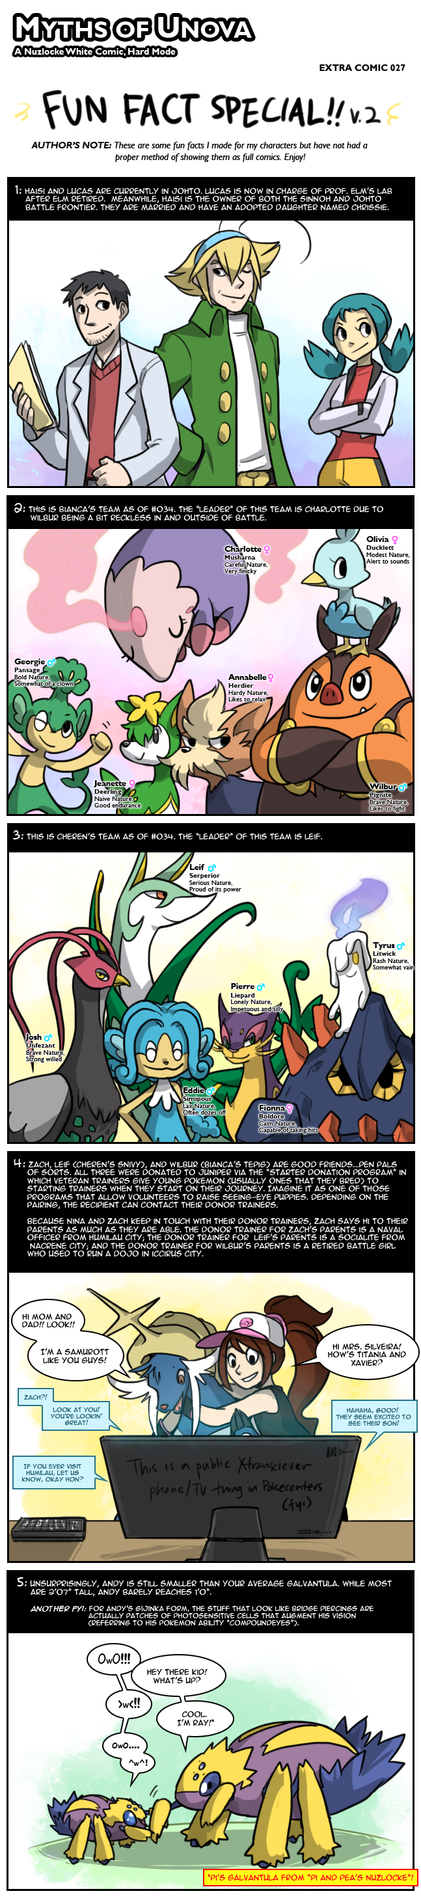 Nuzlocke White: Extra Comic 27 by ky-nim